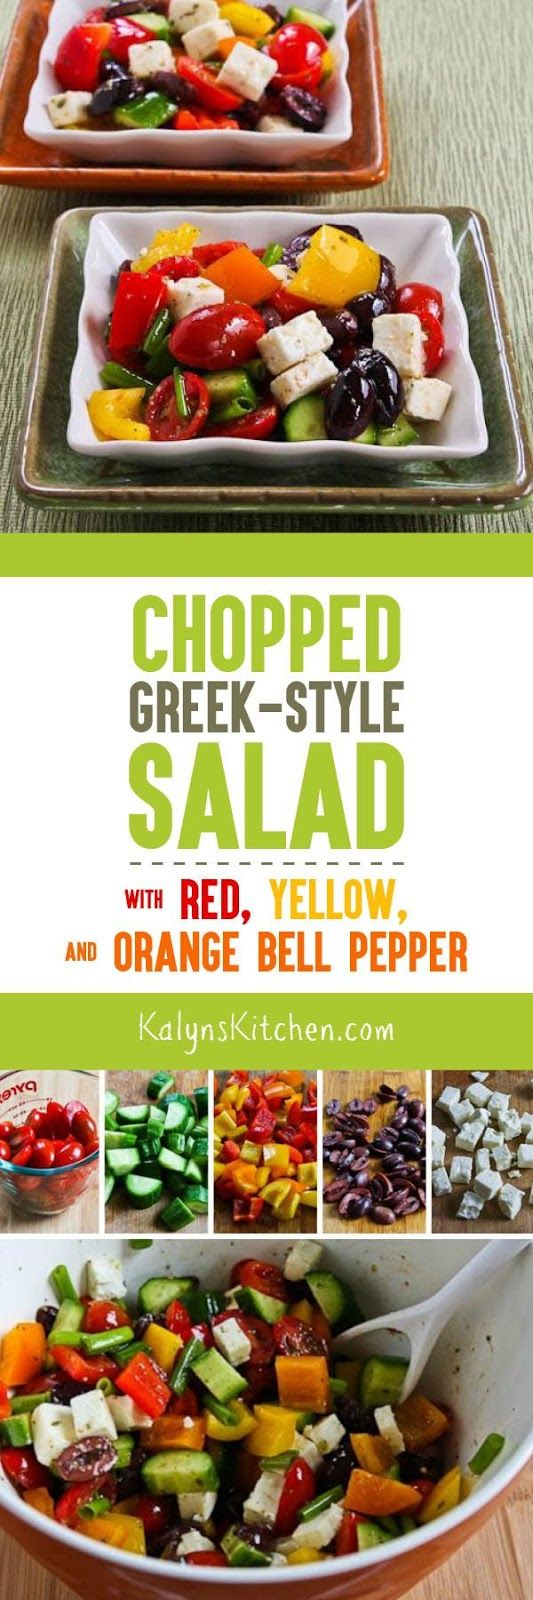 Chopped Greek-Style Salad with Red, Yellow, and Orange Bell Peppers